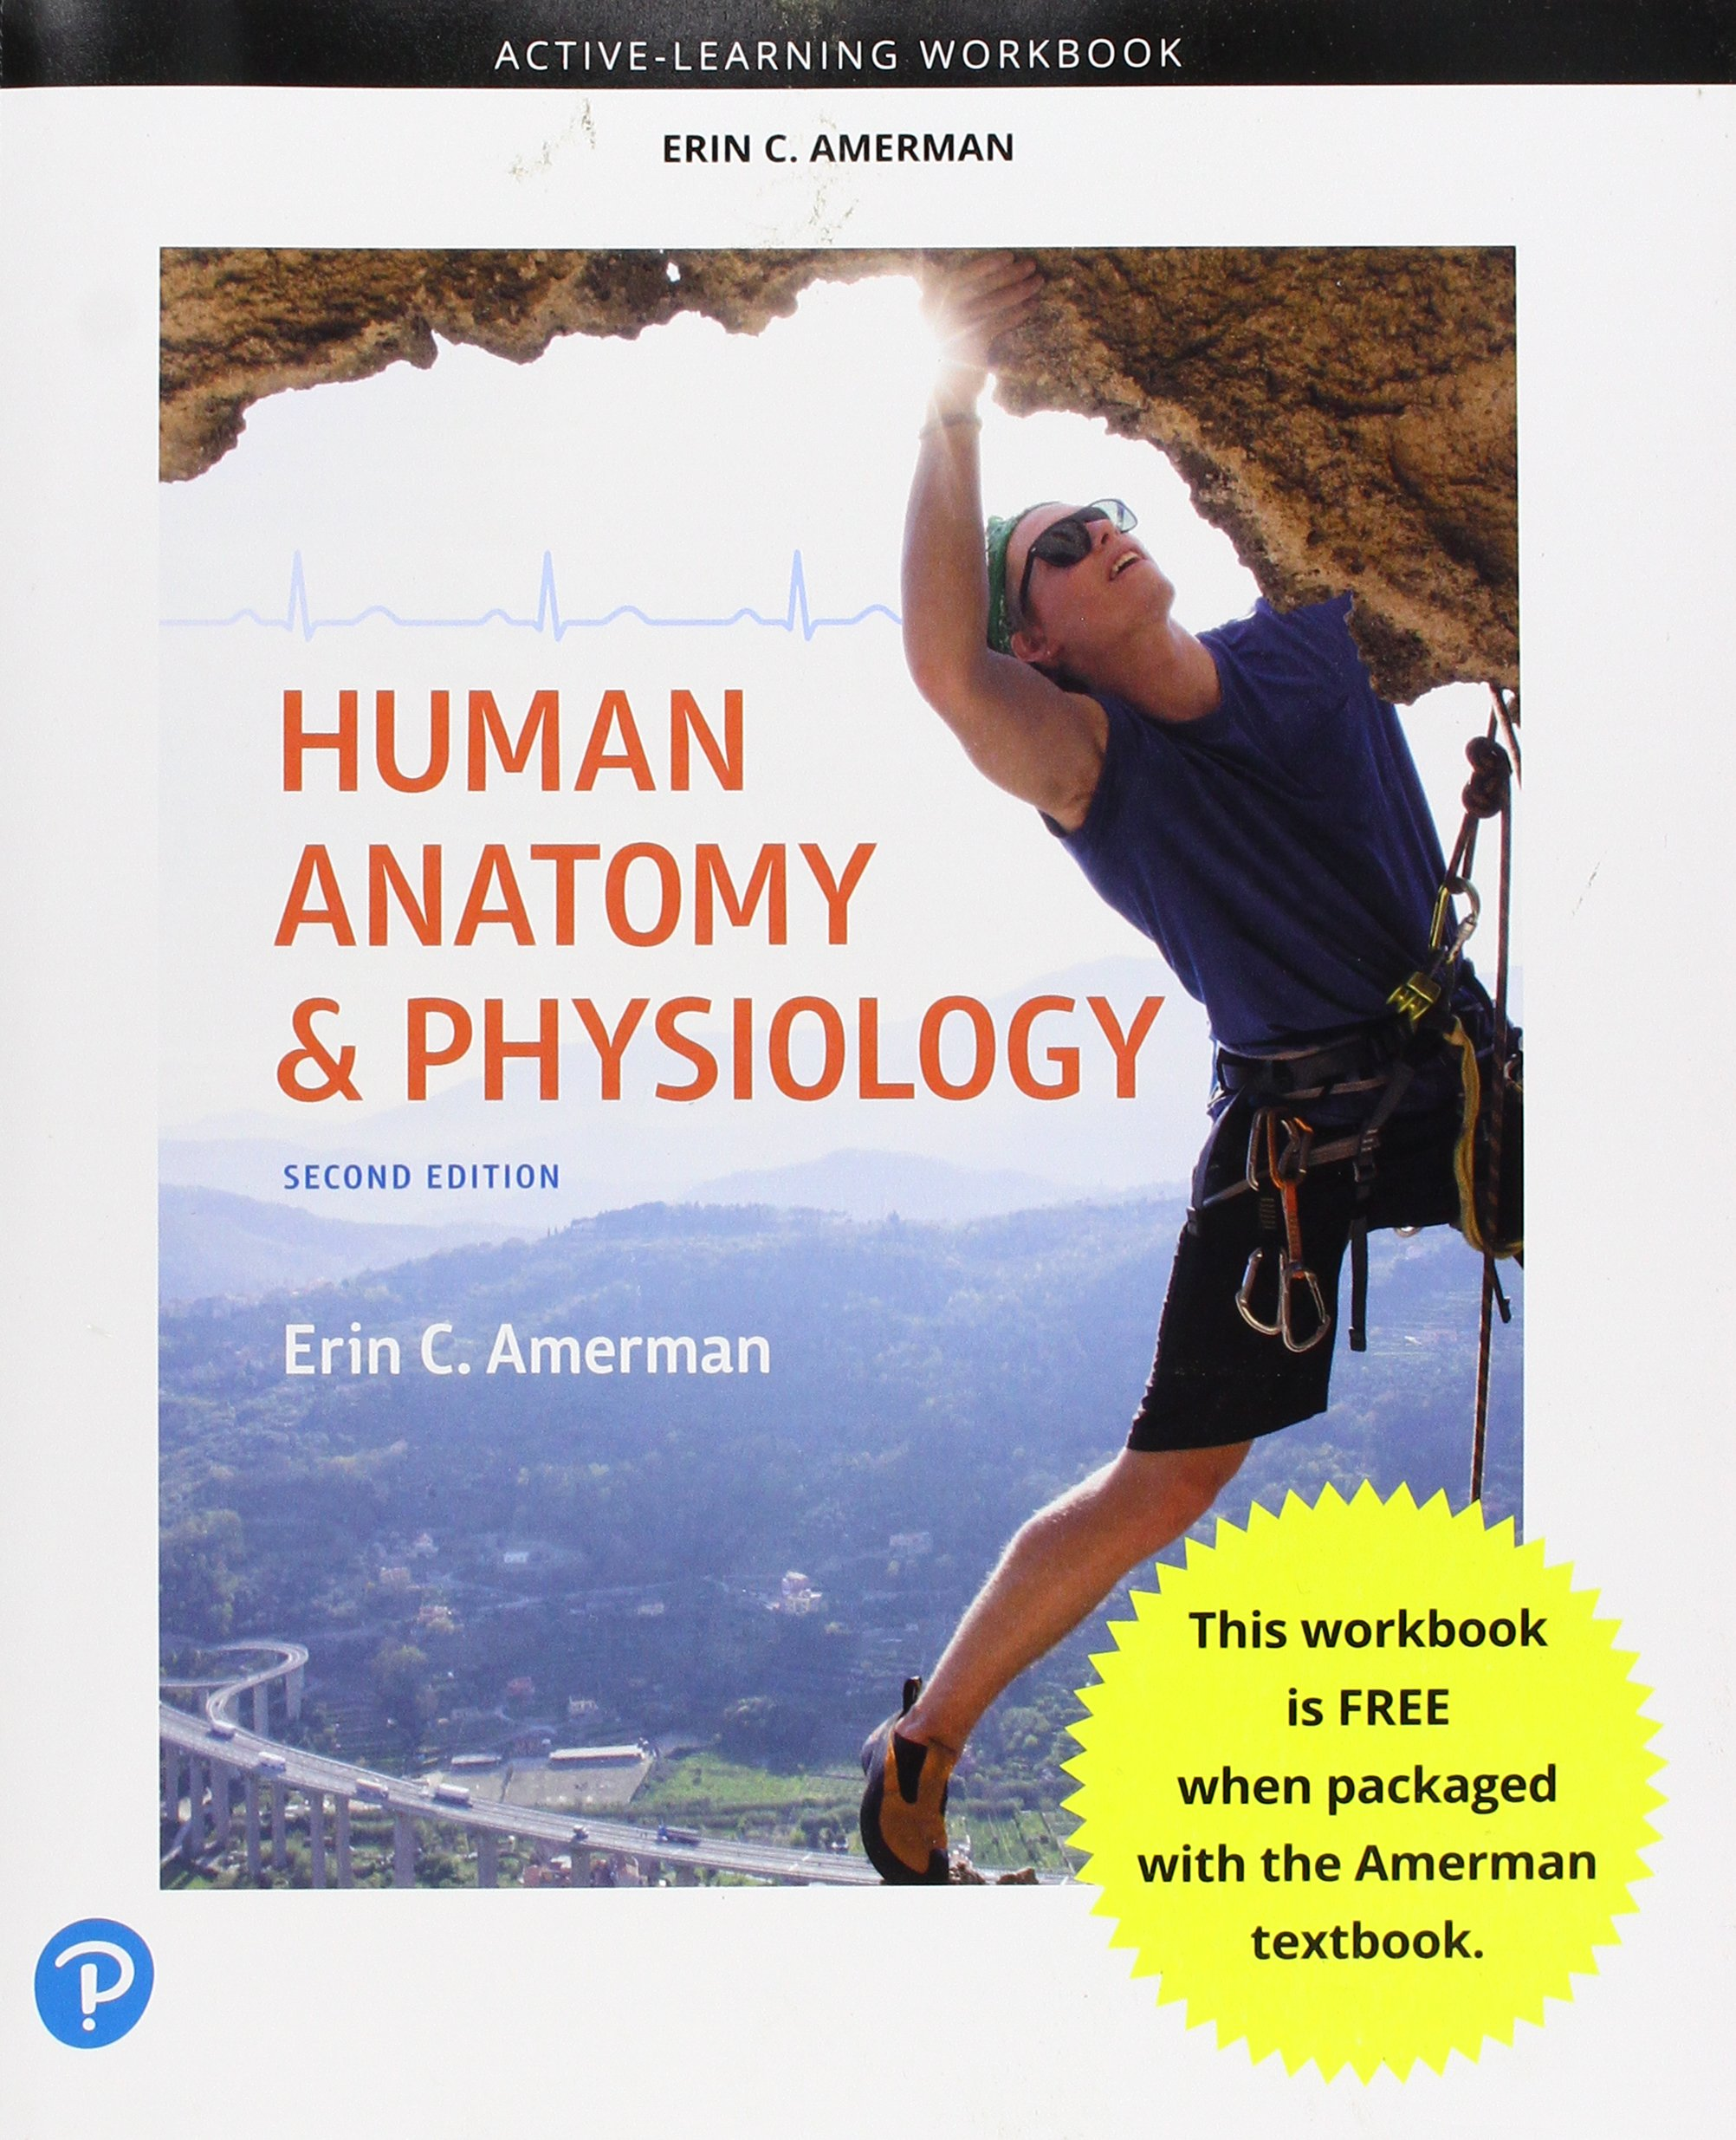 Buy Active-Learning Workbook for Human Anatomy & Physiology Book ...